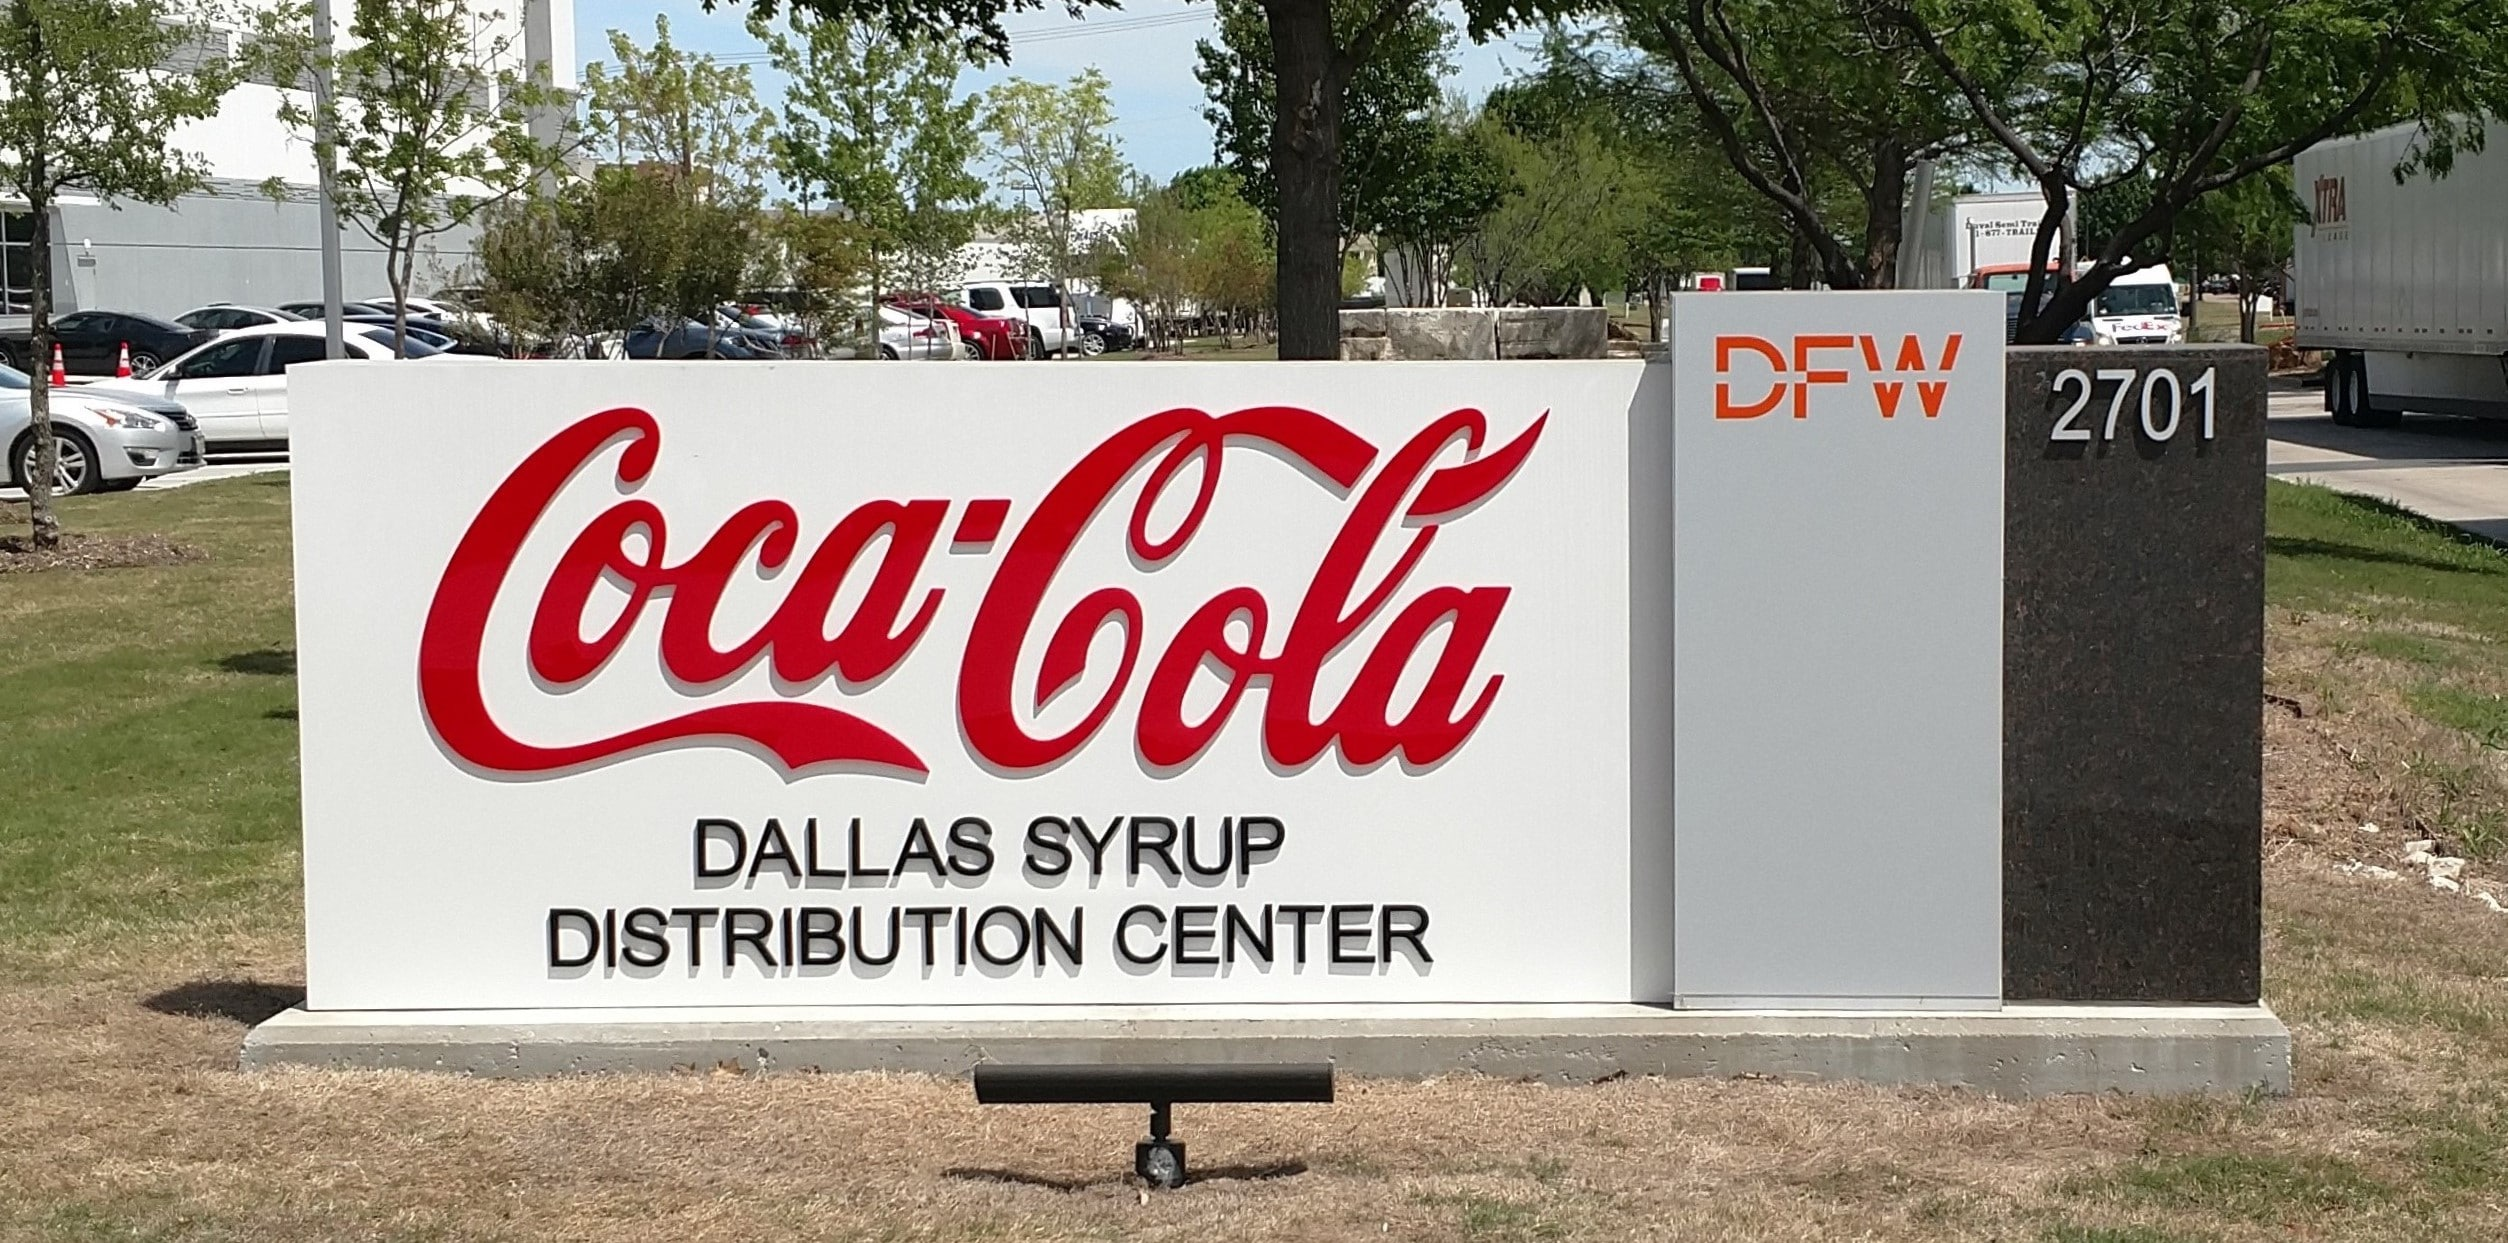 Fortune 500 Companies Brand Signage for Industry Cowtown Coca Cola Monument Sign